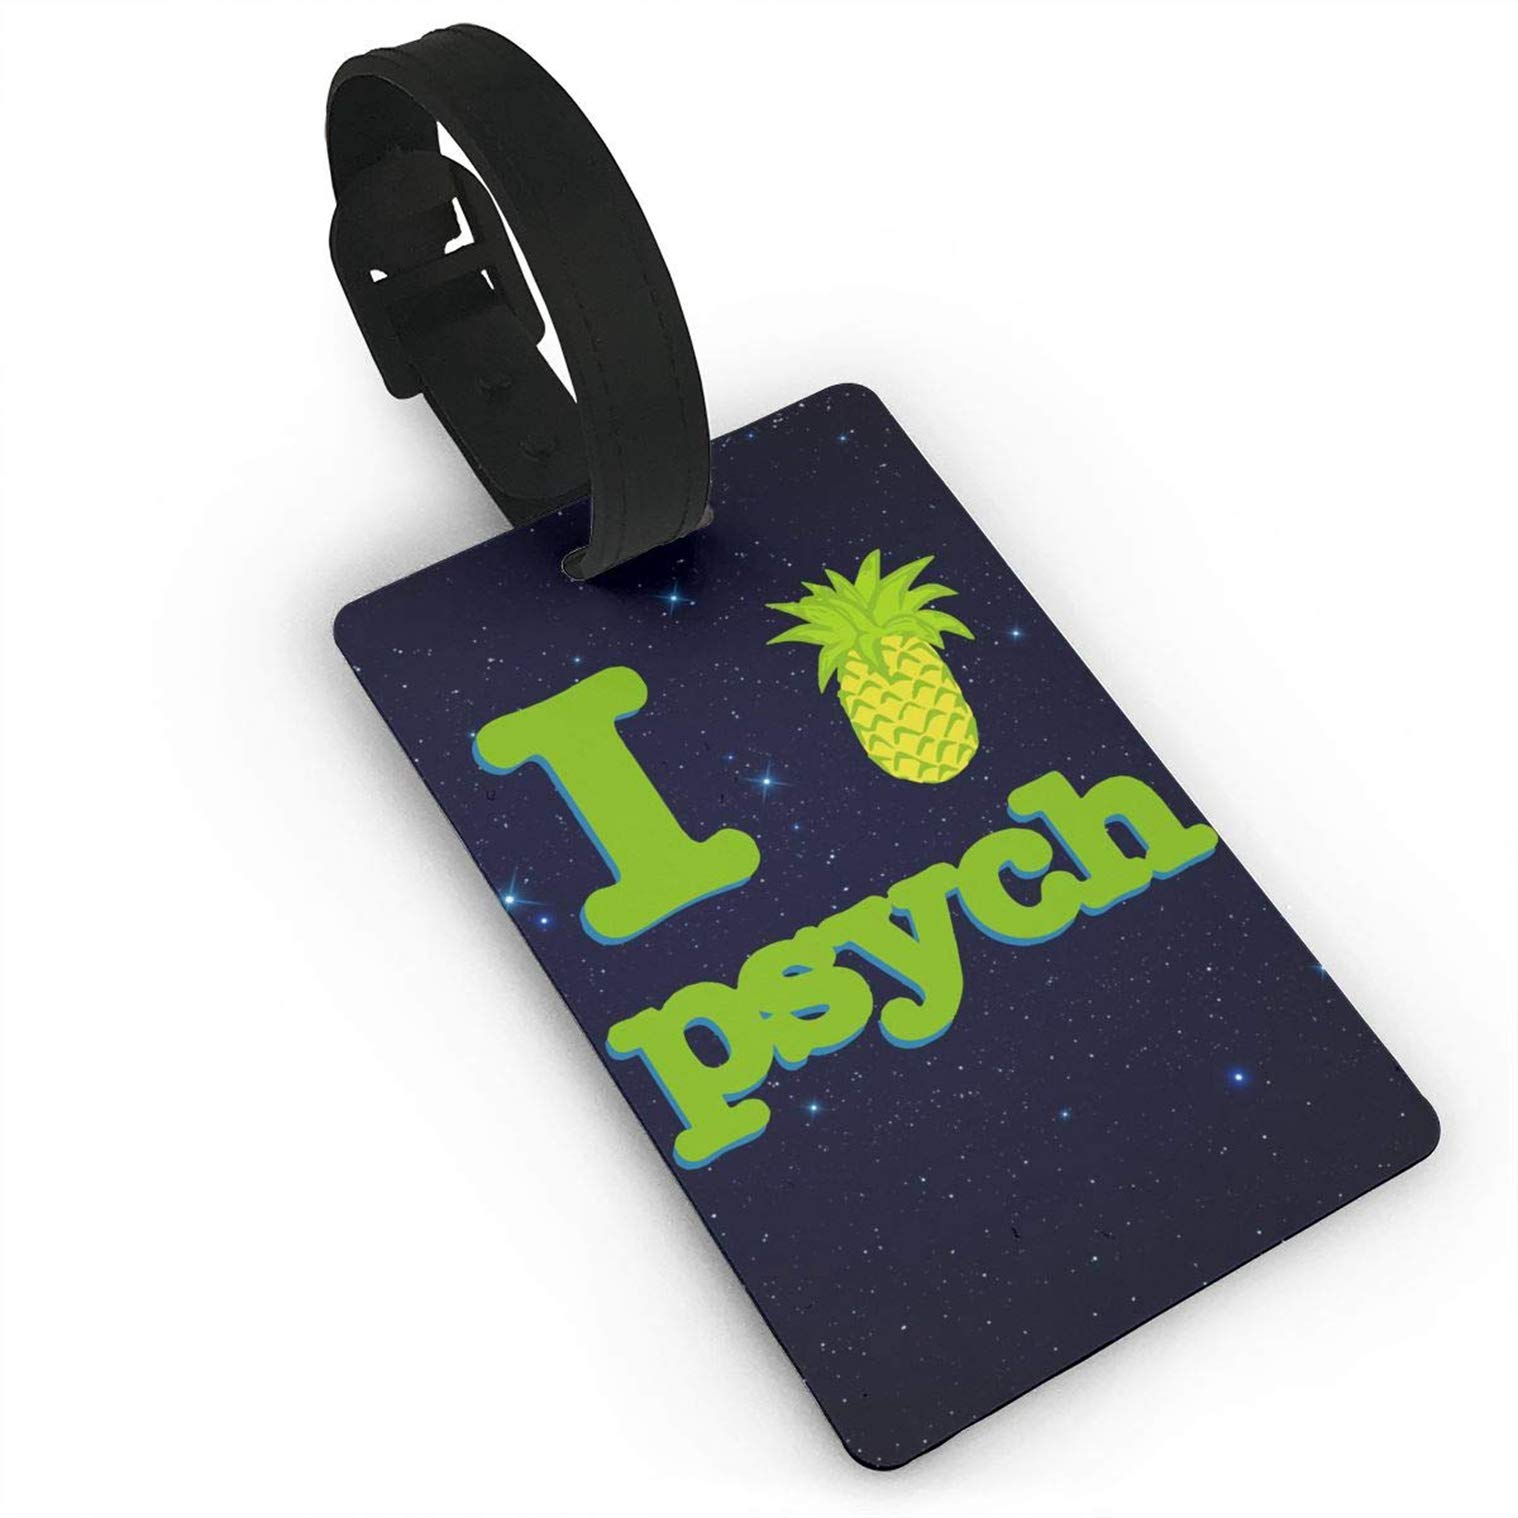 I Love Psych Pineapple,Bag Tags Travel ID Bag Tag for Men Women Baby Strollers,Luggage Bag Travel Luggage Tag ID Identification Labels by HOTSELL-Makemoney.forever